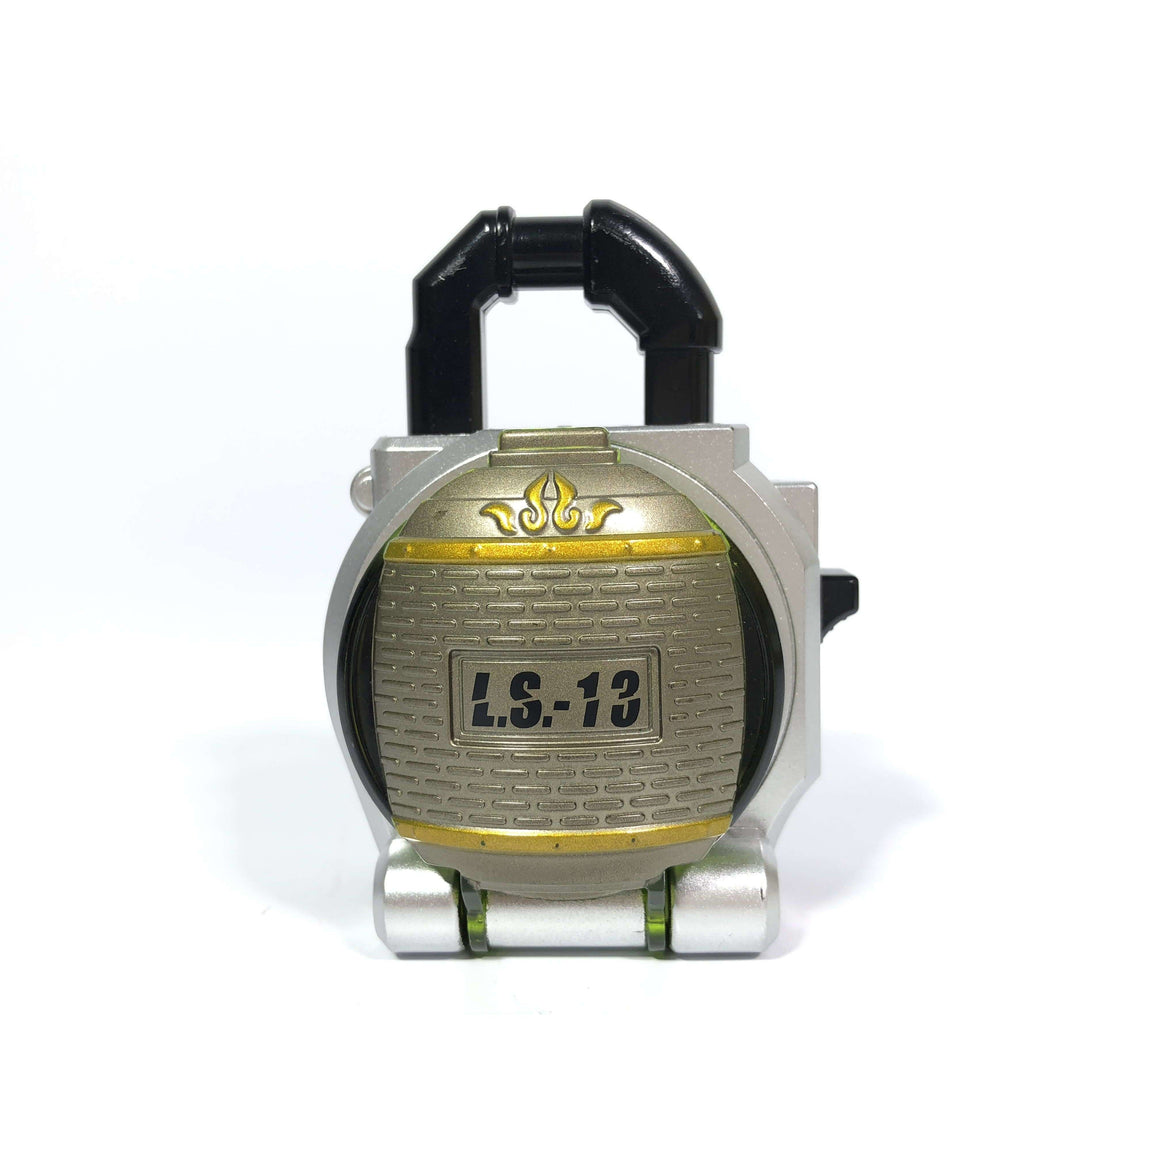 CSTOYS INTERNATIONAL:[LOOSE] Kamen Rider Gaim: DX Kiwi Lock Seed